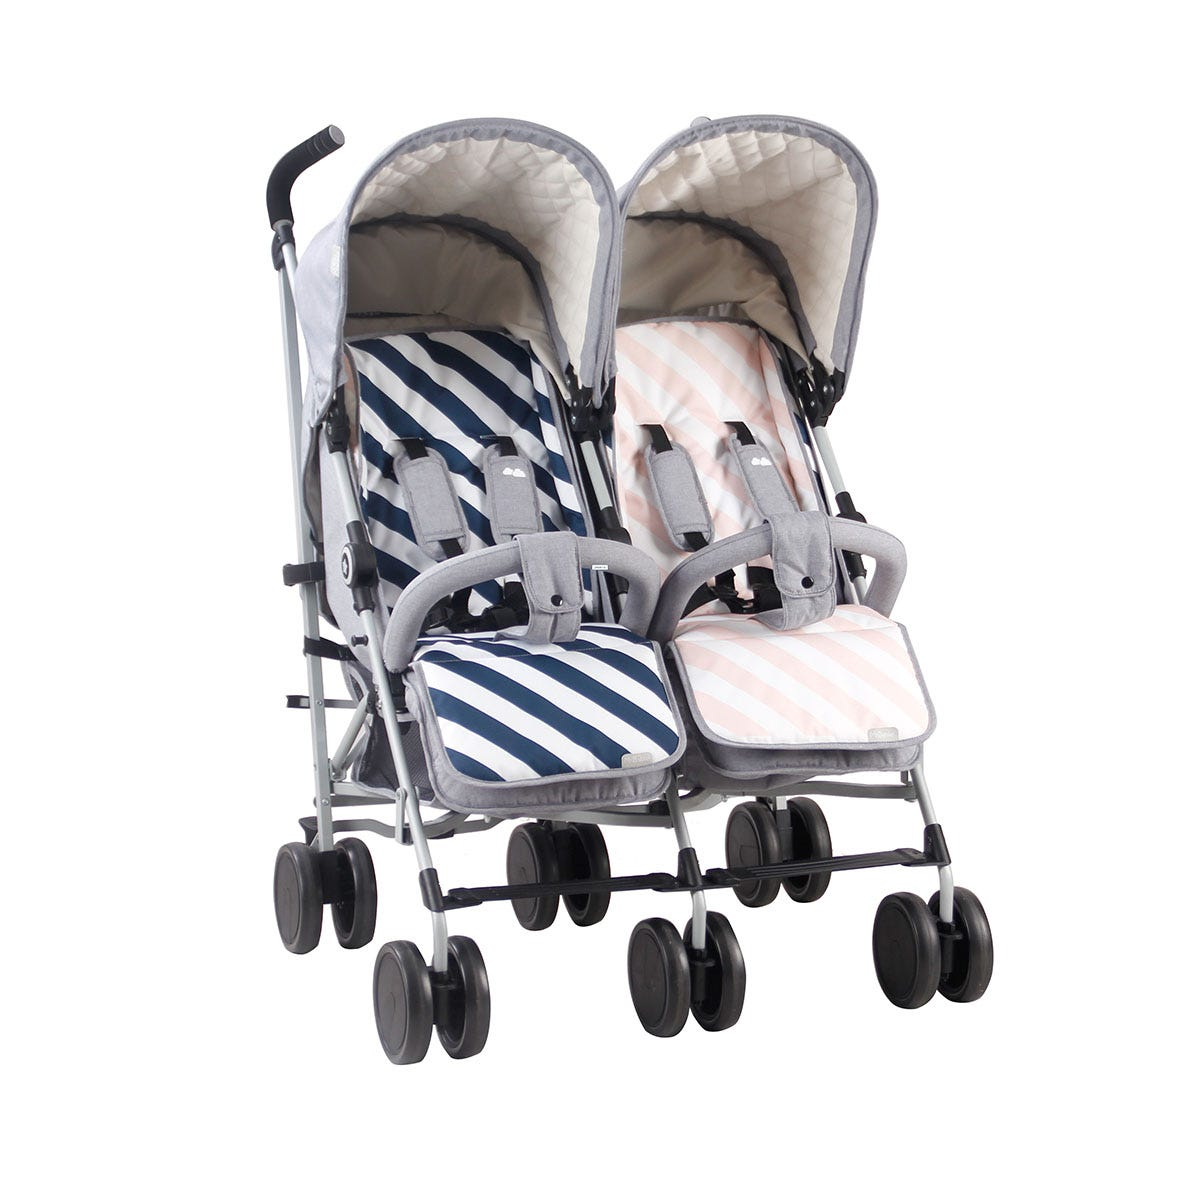 My Babiie Samantha Faiers MB22 Double Stroller with Reversible Seat Liners - Grey Melange